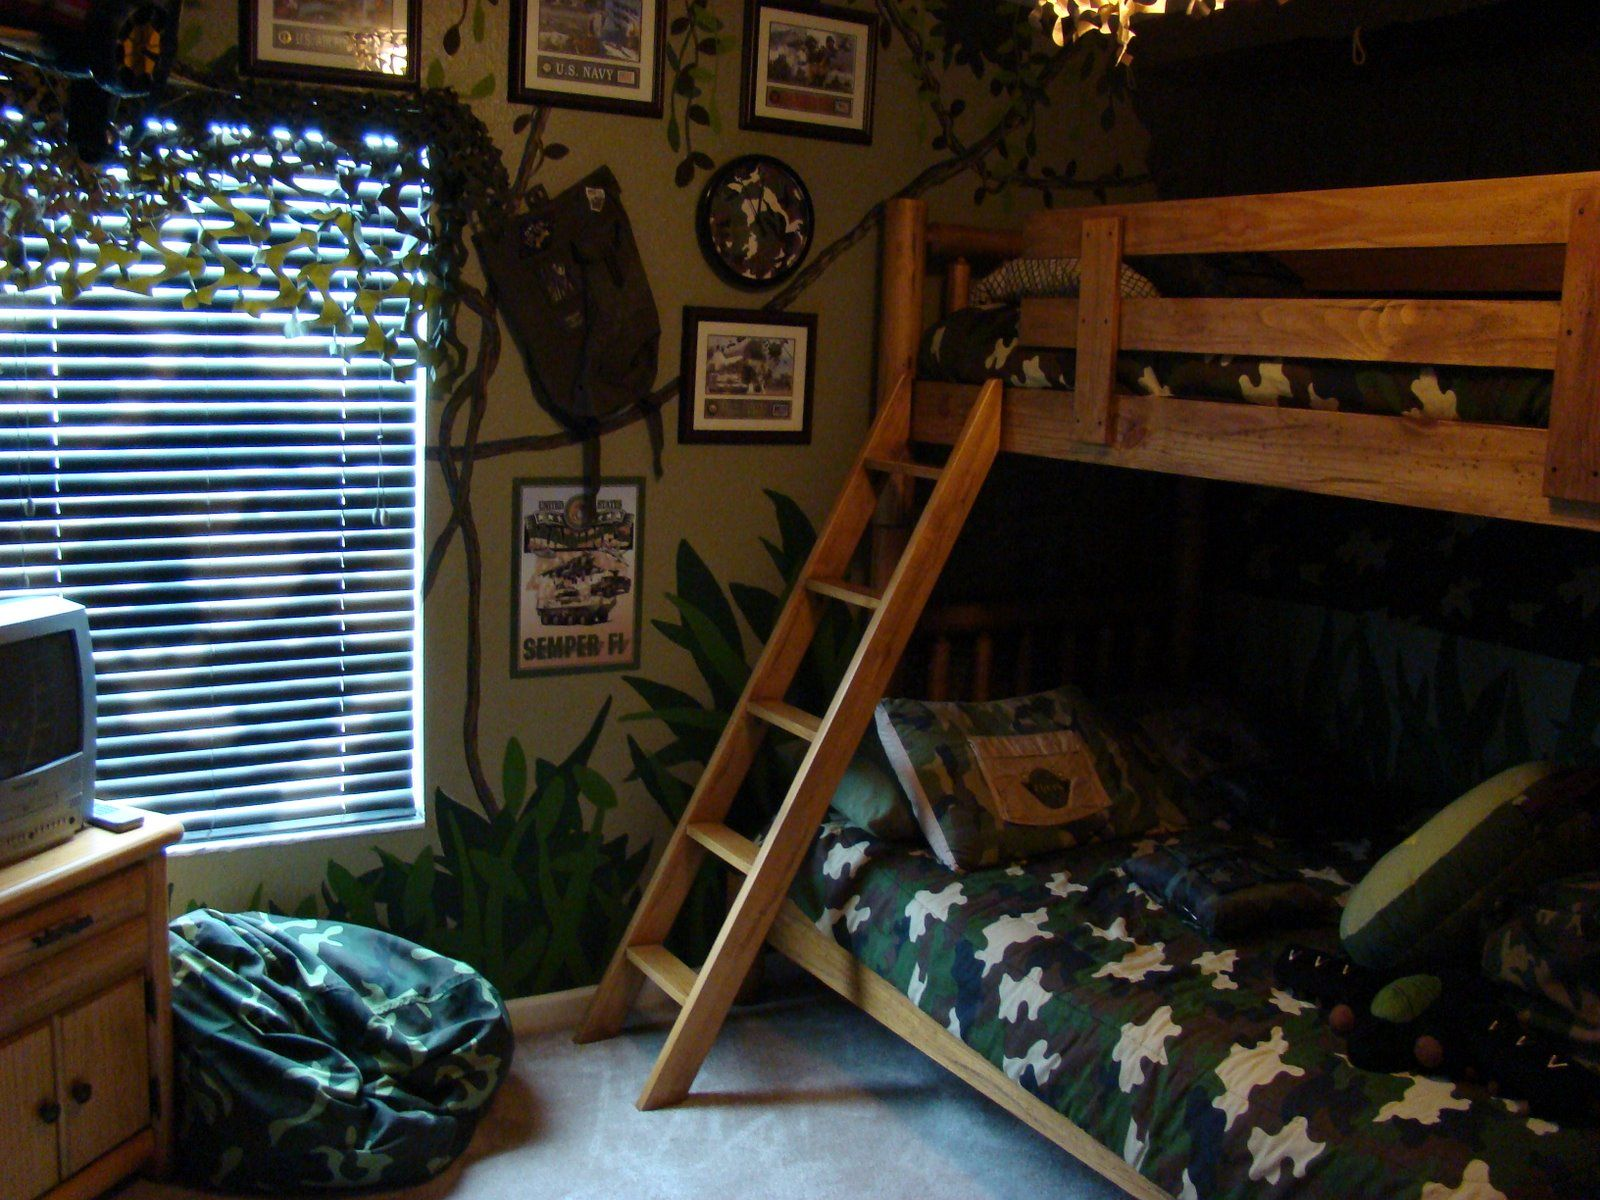 Camouflage Bedrooms For Kids | DSNY Home One (DSNY1) :